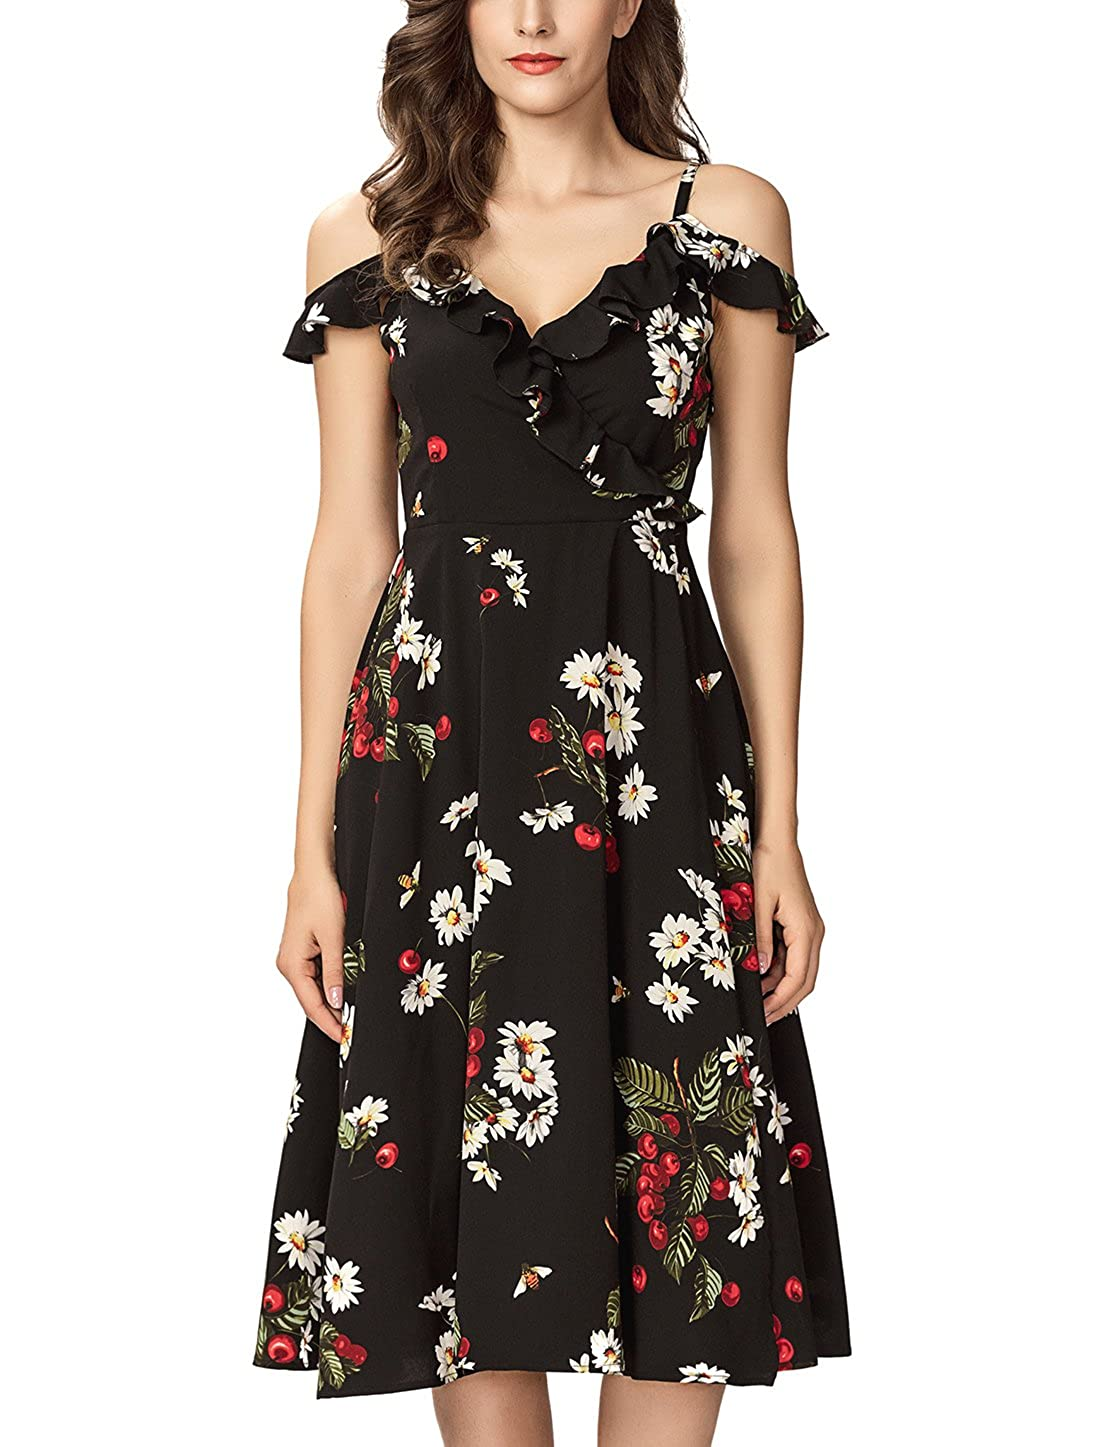 a6359c0fd Noctflos Women s Summer Floral Cold Shoulder Midi Dress for Casual Cocktail  Wedding Guest at Amazon Women s Clothing store